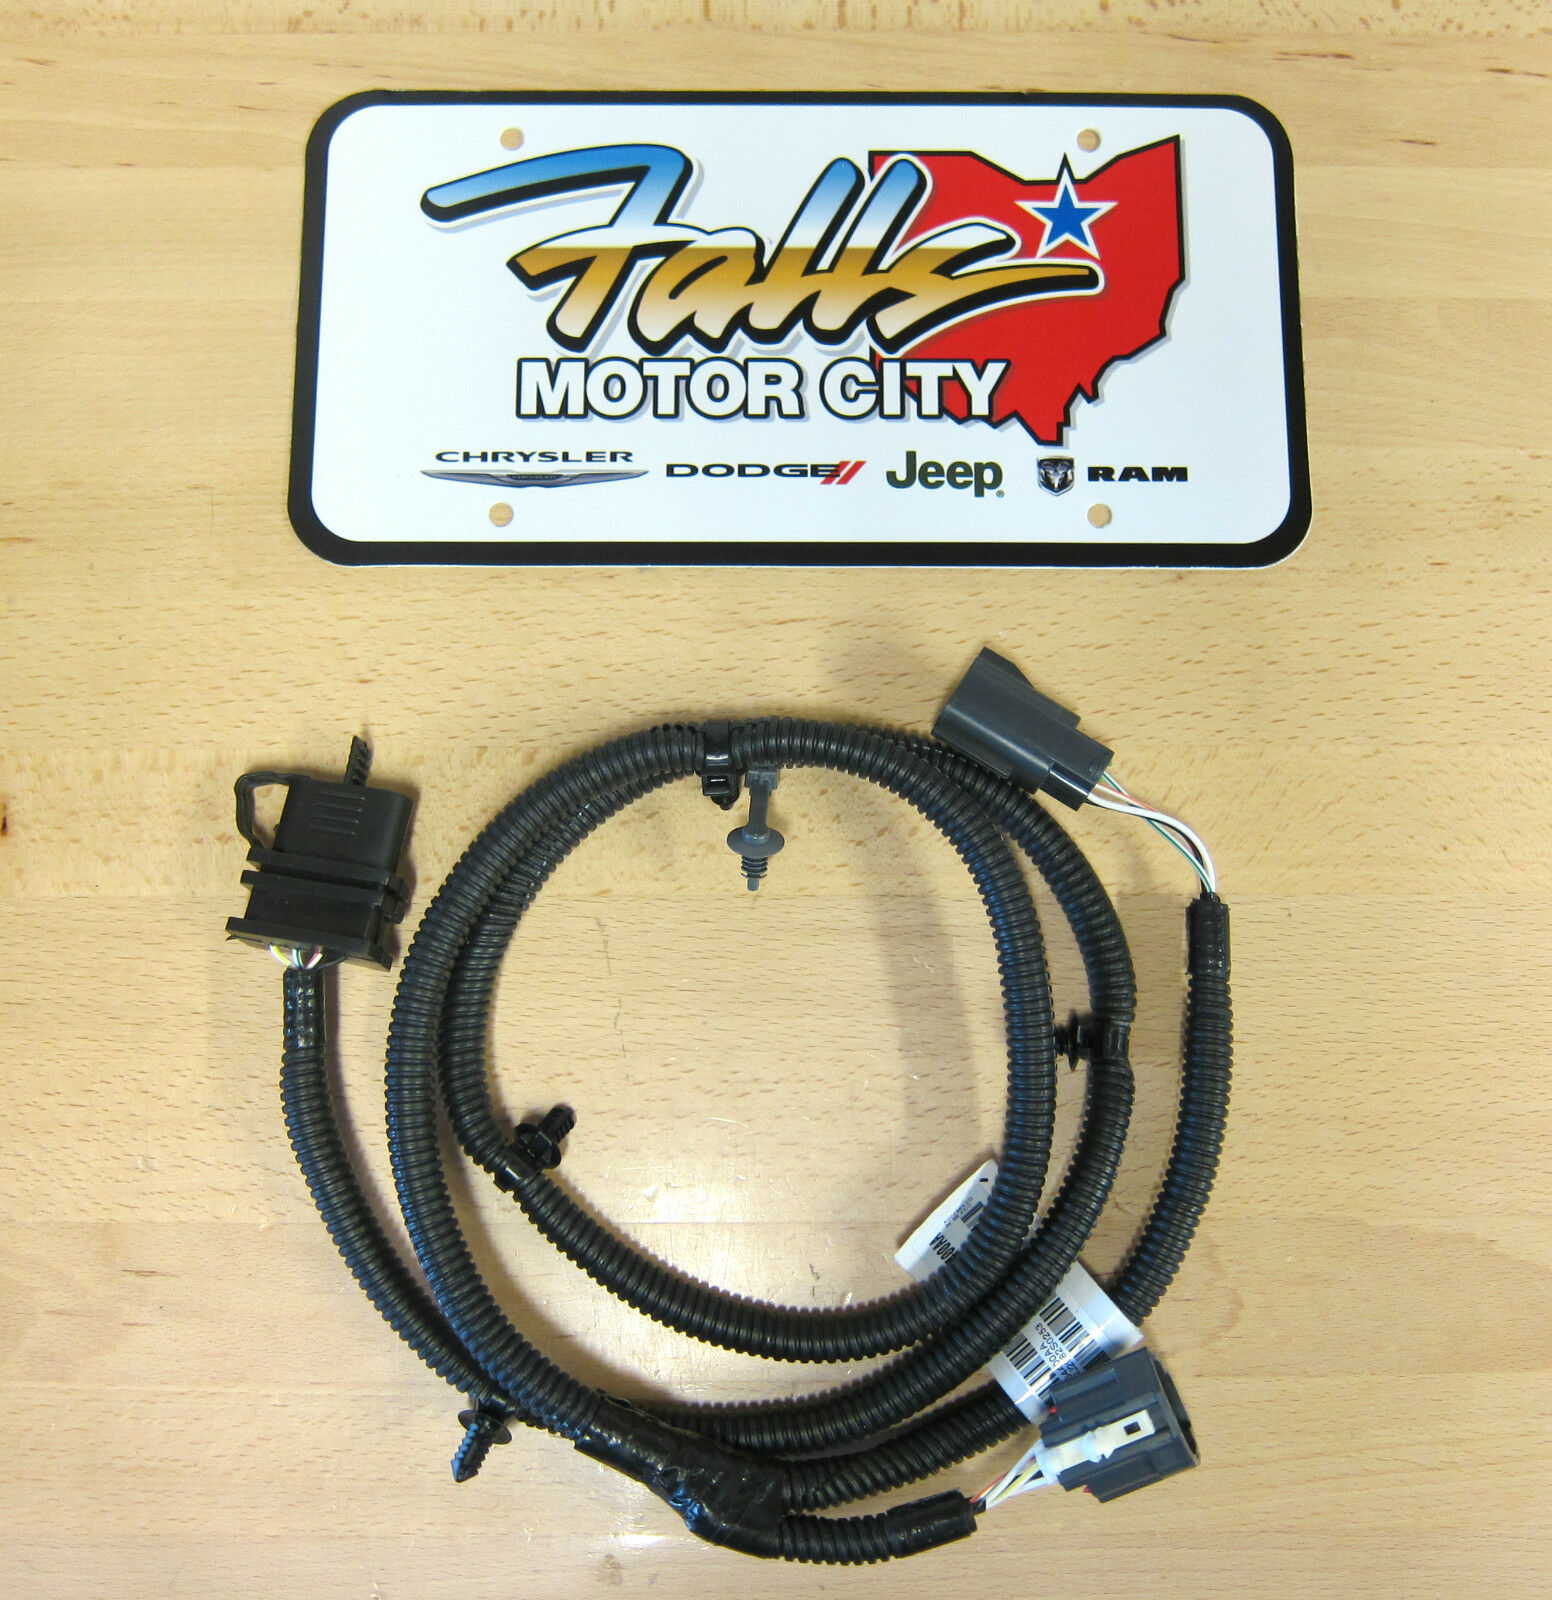 s l1600 jeep wrangler trailer tow wiring harness oem mopar 82210213 jk 4 mopar trailer wiring harness at virtualis.co